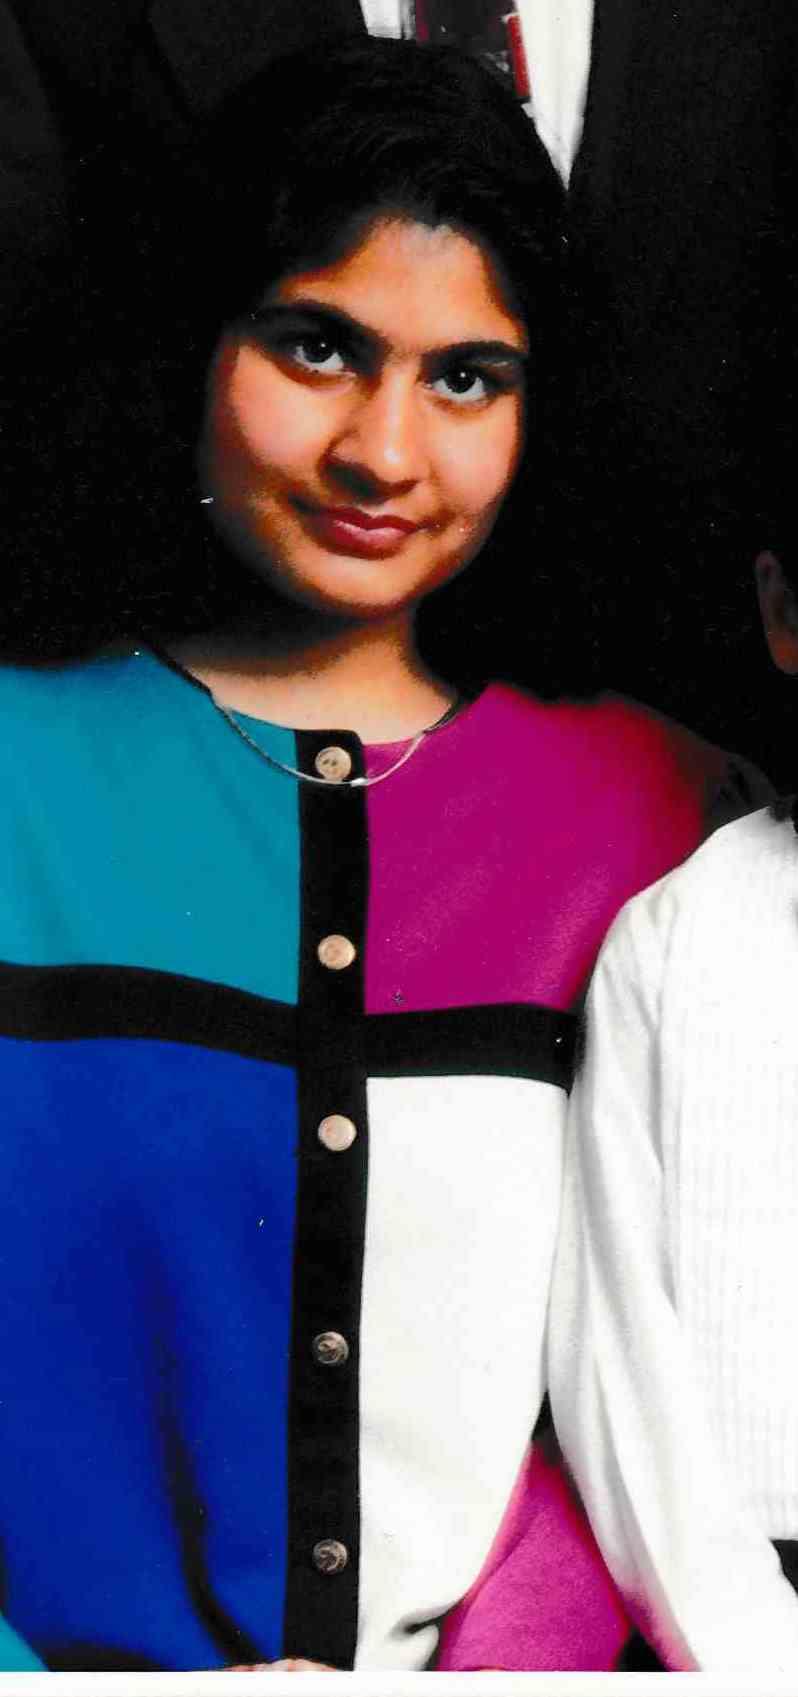 Mahnaaz Dattu in her teens